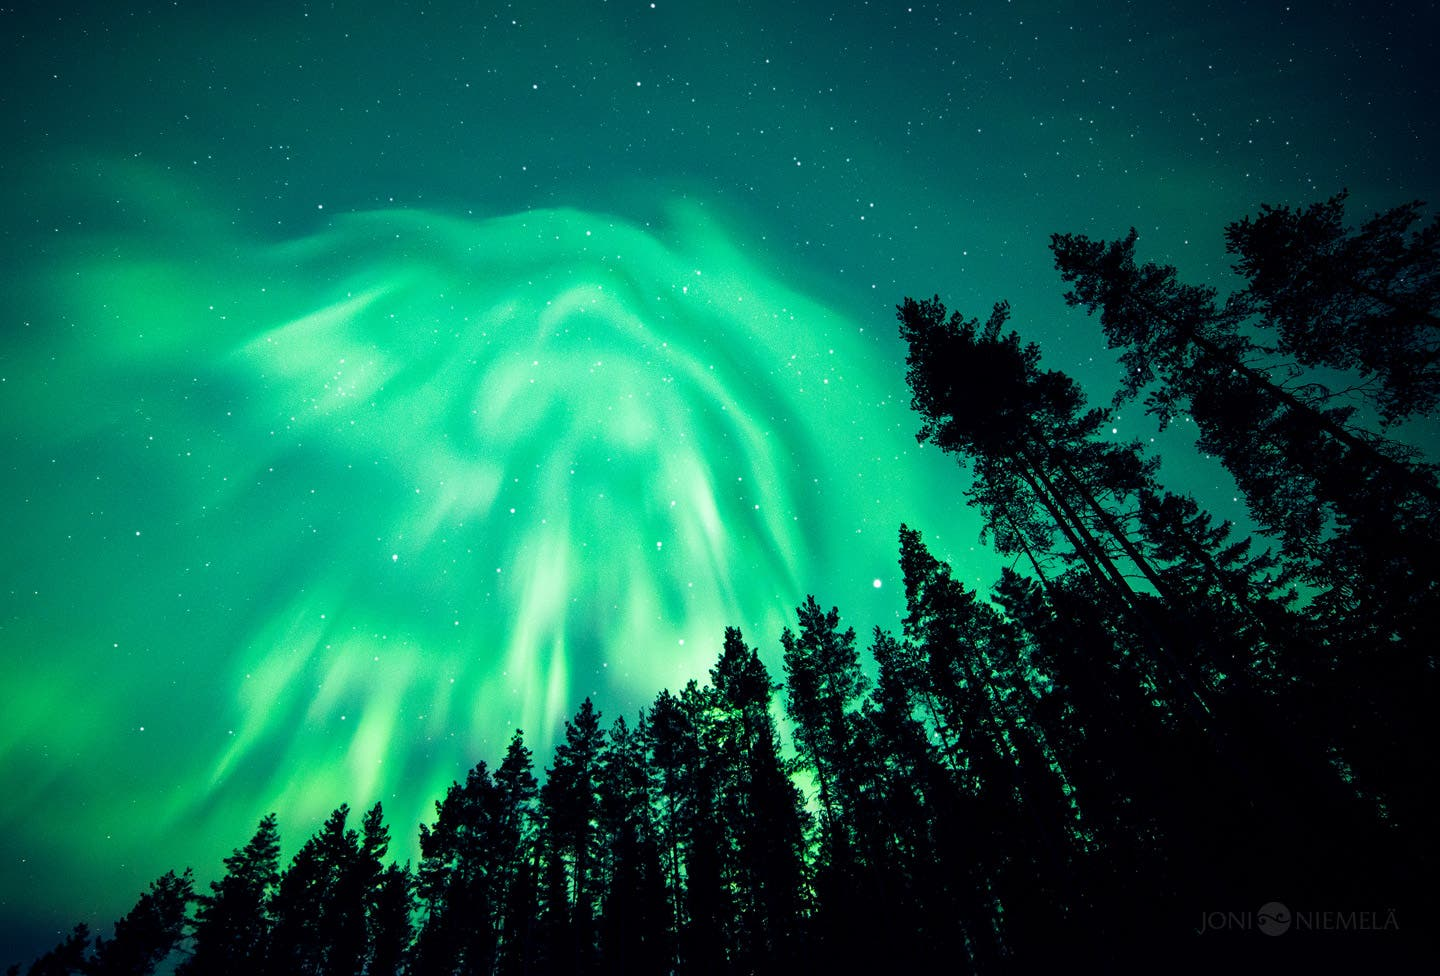 Joni Niemela: Captivating Images of the Night Sky